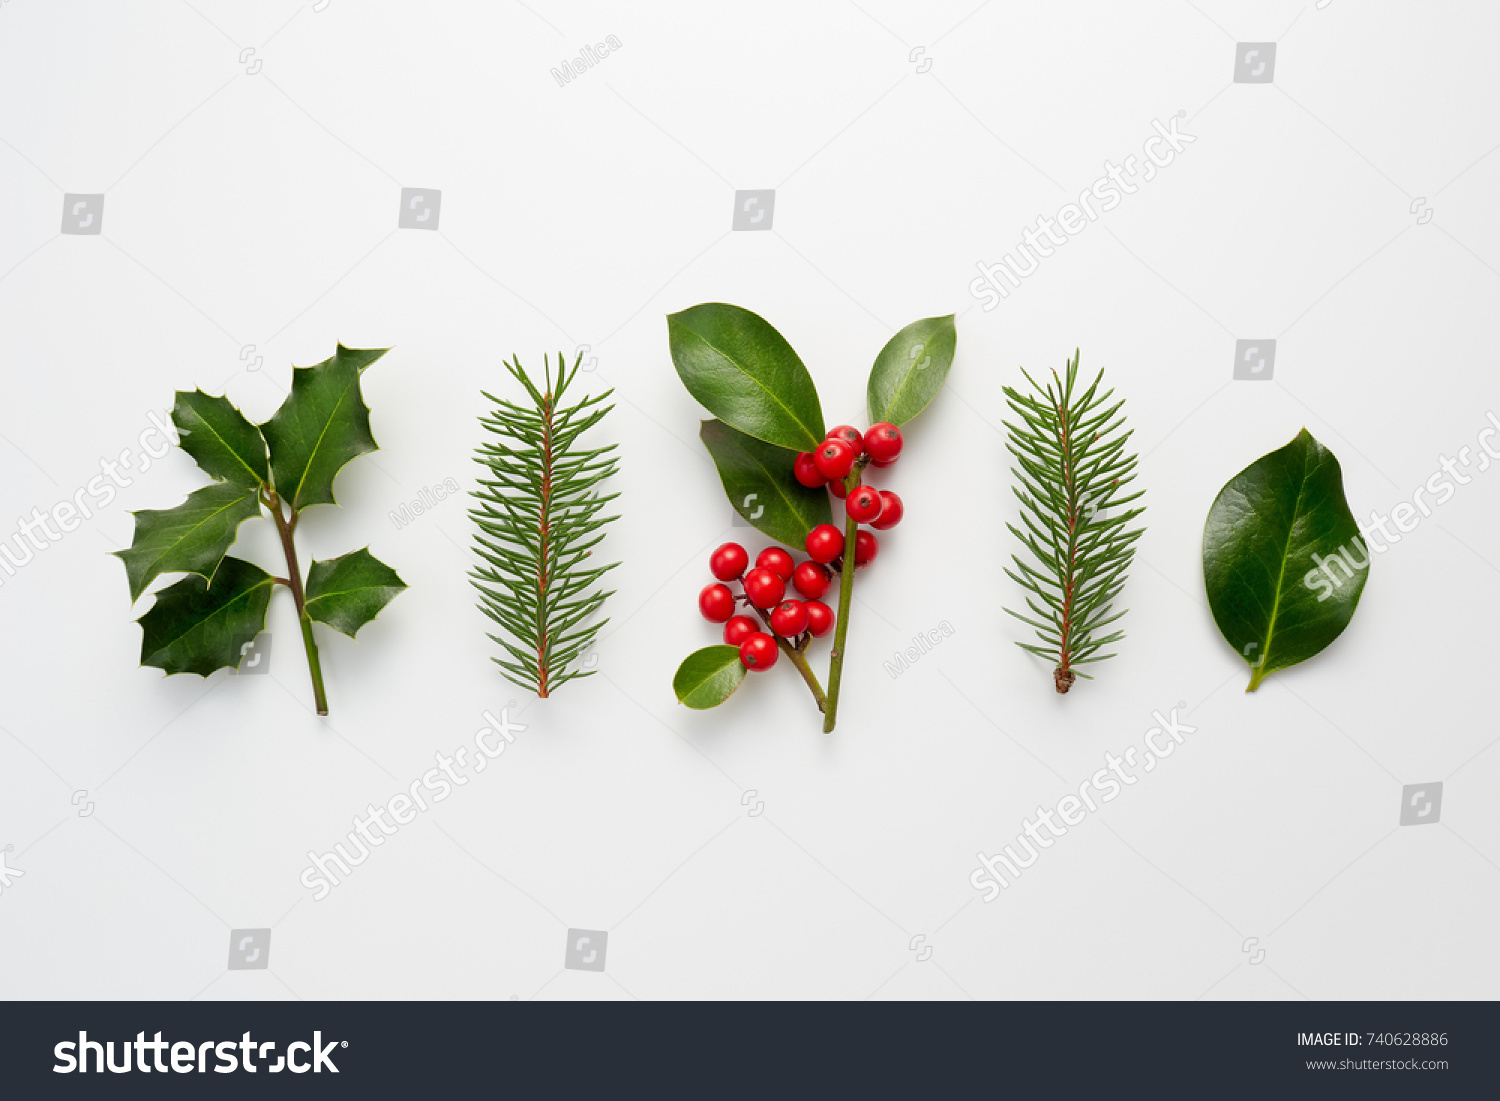 Collection Decorative Christmas Plants Green Leaves Stock Photo